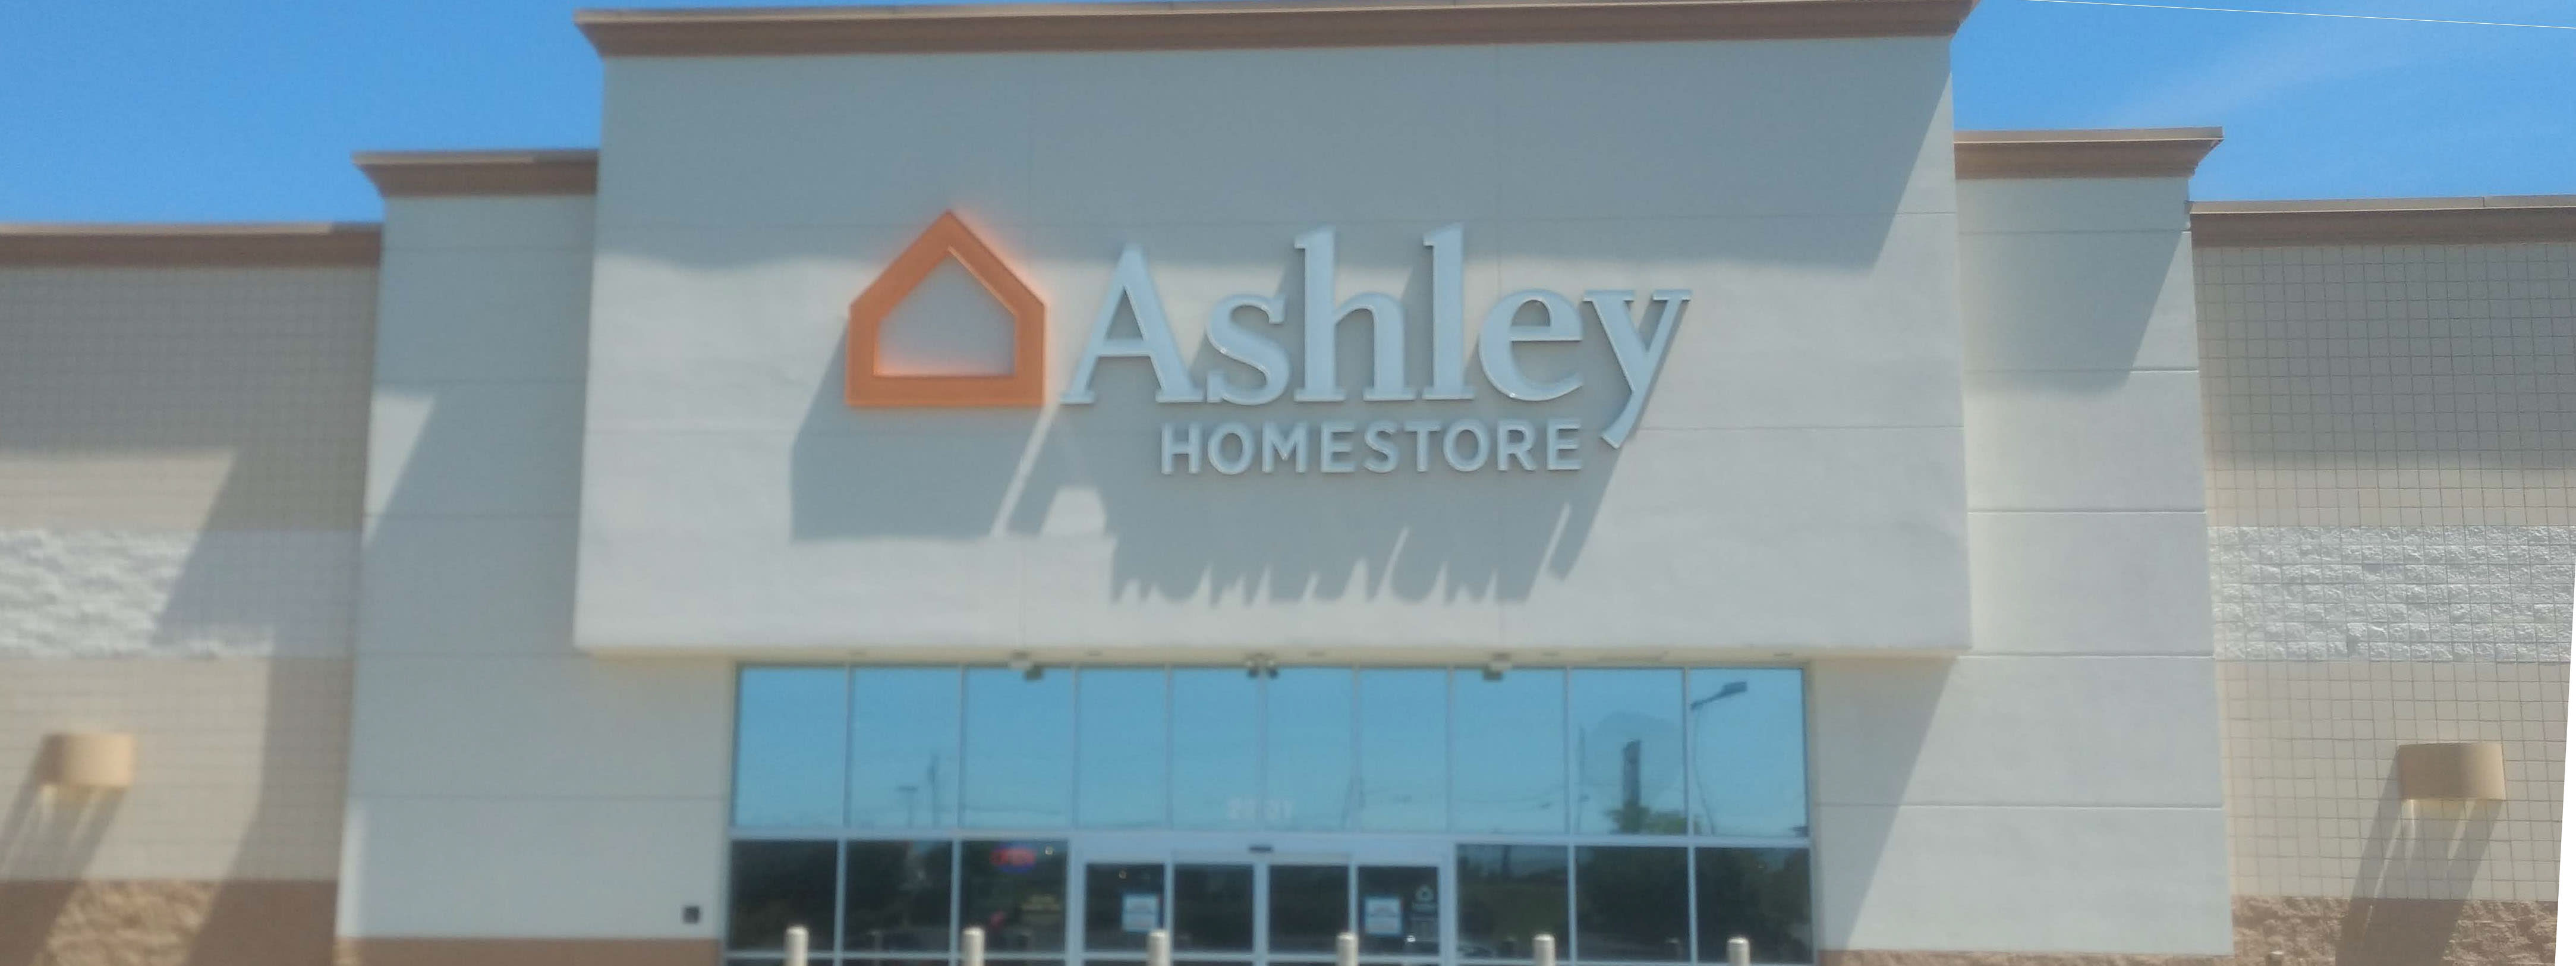 Ordinaire Furniture And Mattress Store In Hickory, NC | Ashley HomeStore 7710000251